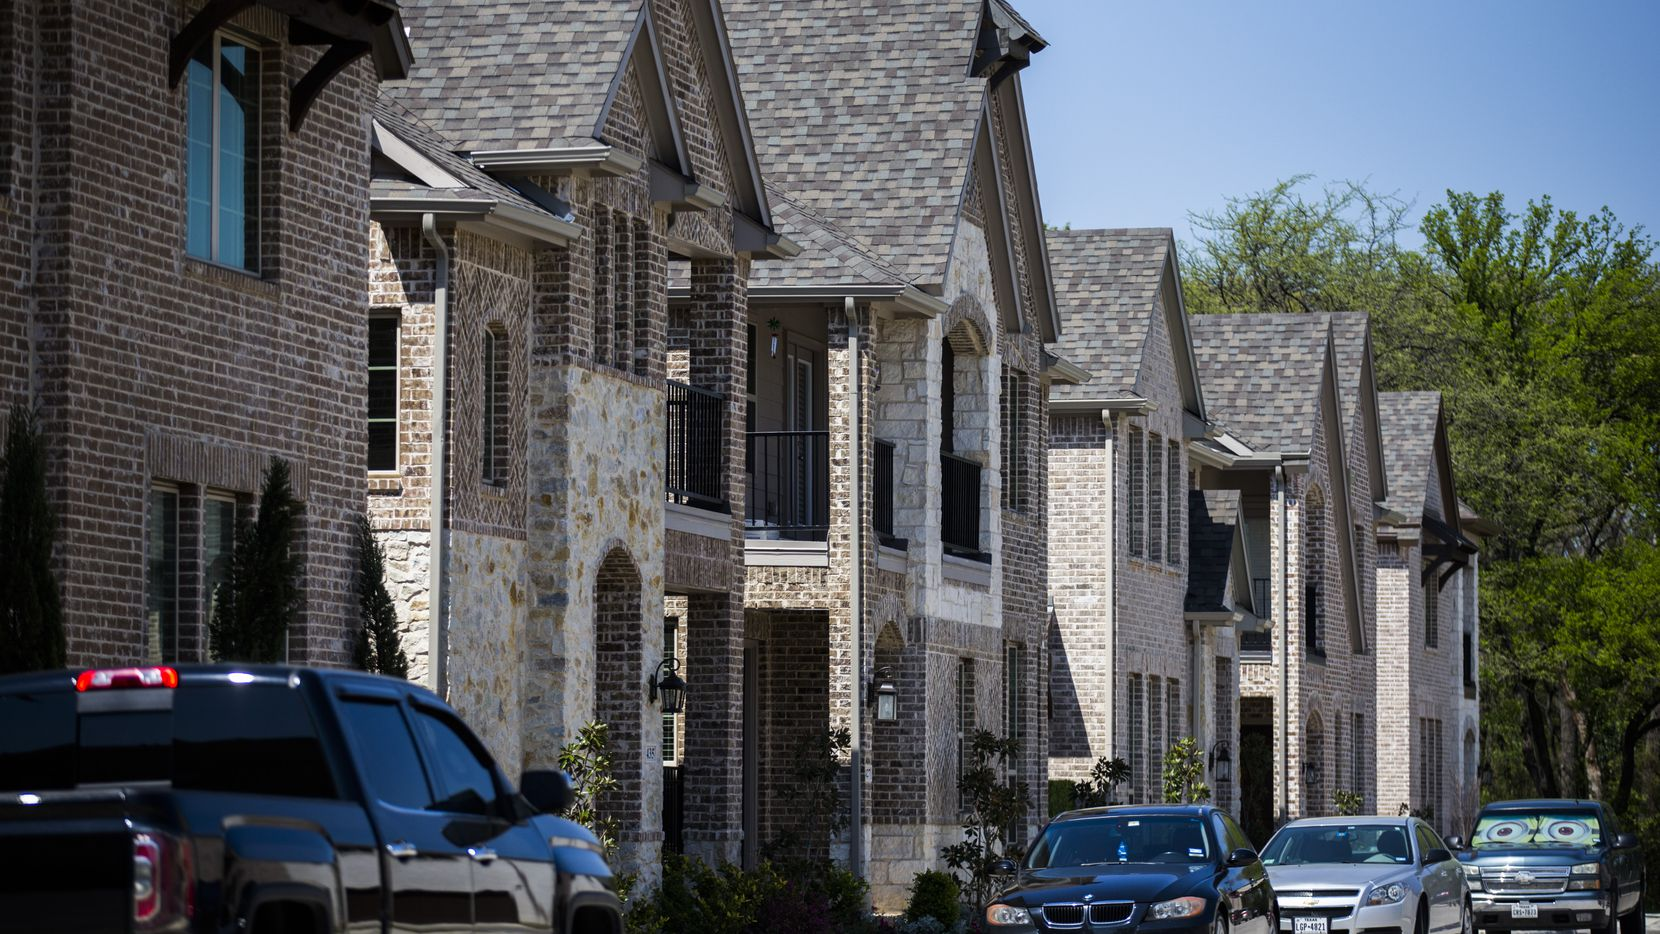 Homes in the Delaware at Heritage Crossing, a new development in old downtown Irving, are bringing new residents to the area.